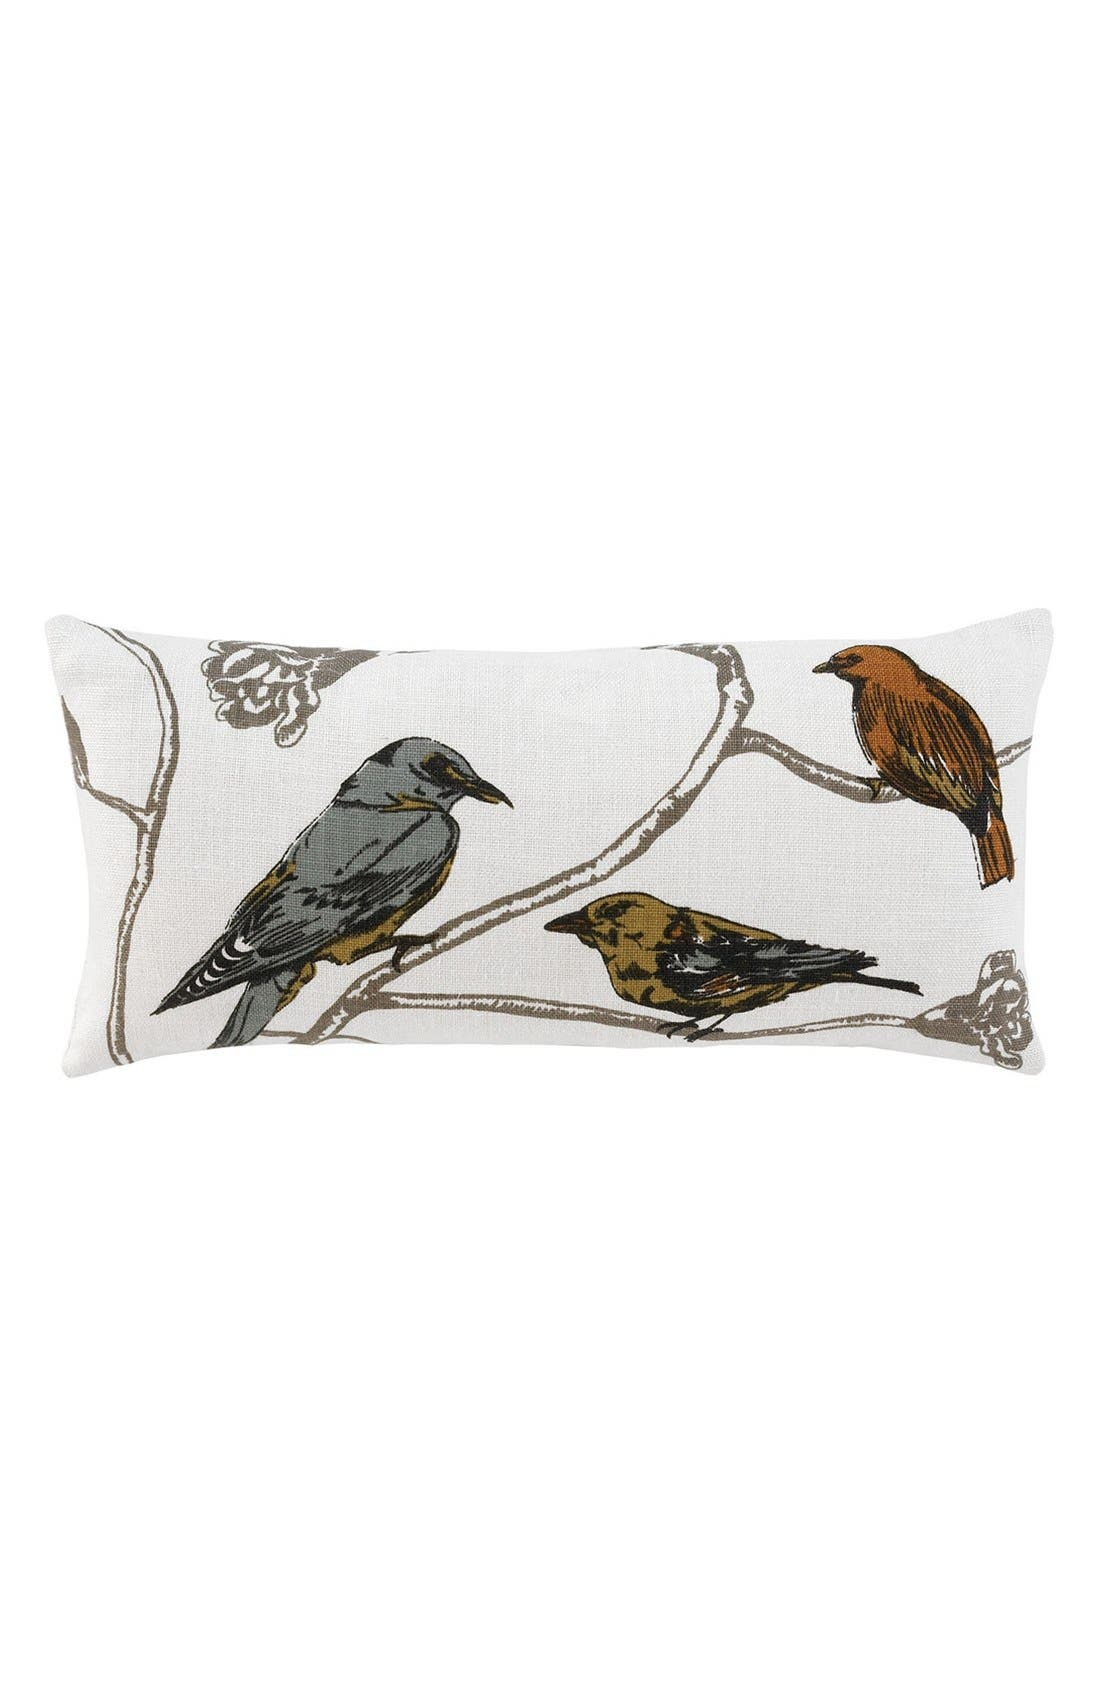 DWELLSTUDIO 'Chinoiserie' Decorative Pillow